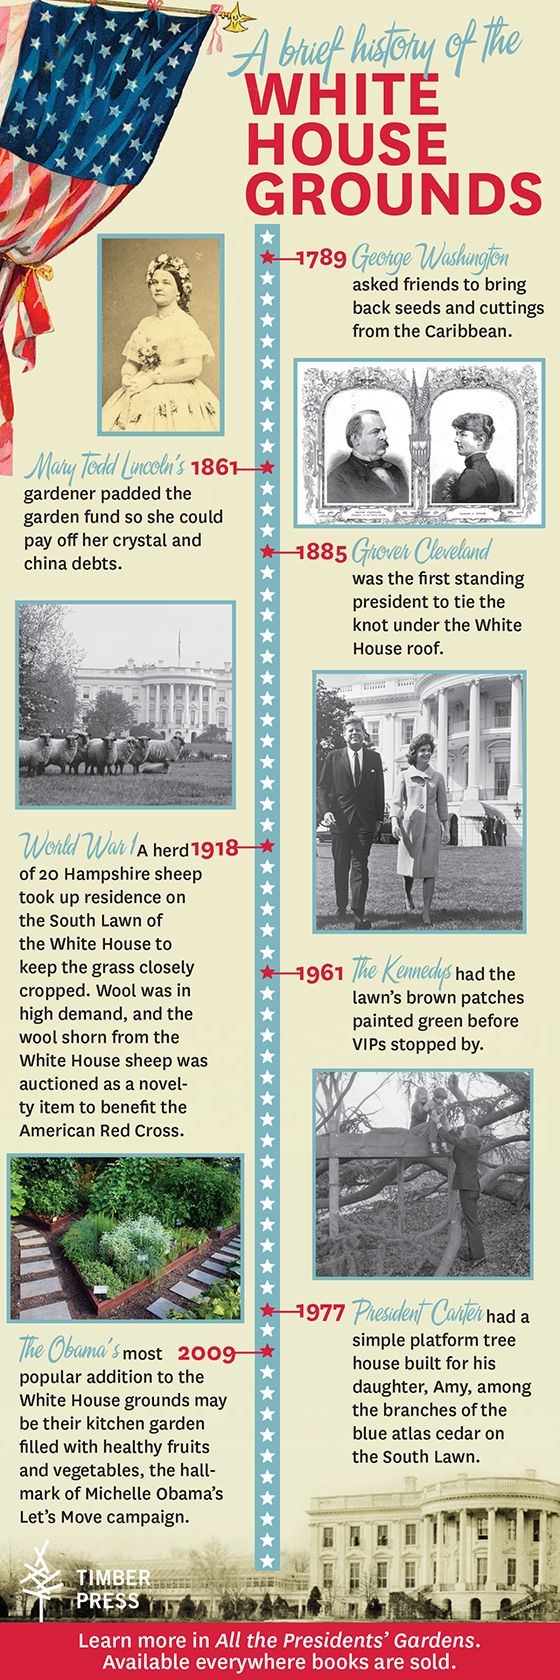 The fascinating history of the White House Grounds! Learn more in the new book ALL THE PRESIDENTS' GARDENS.